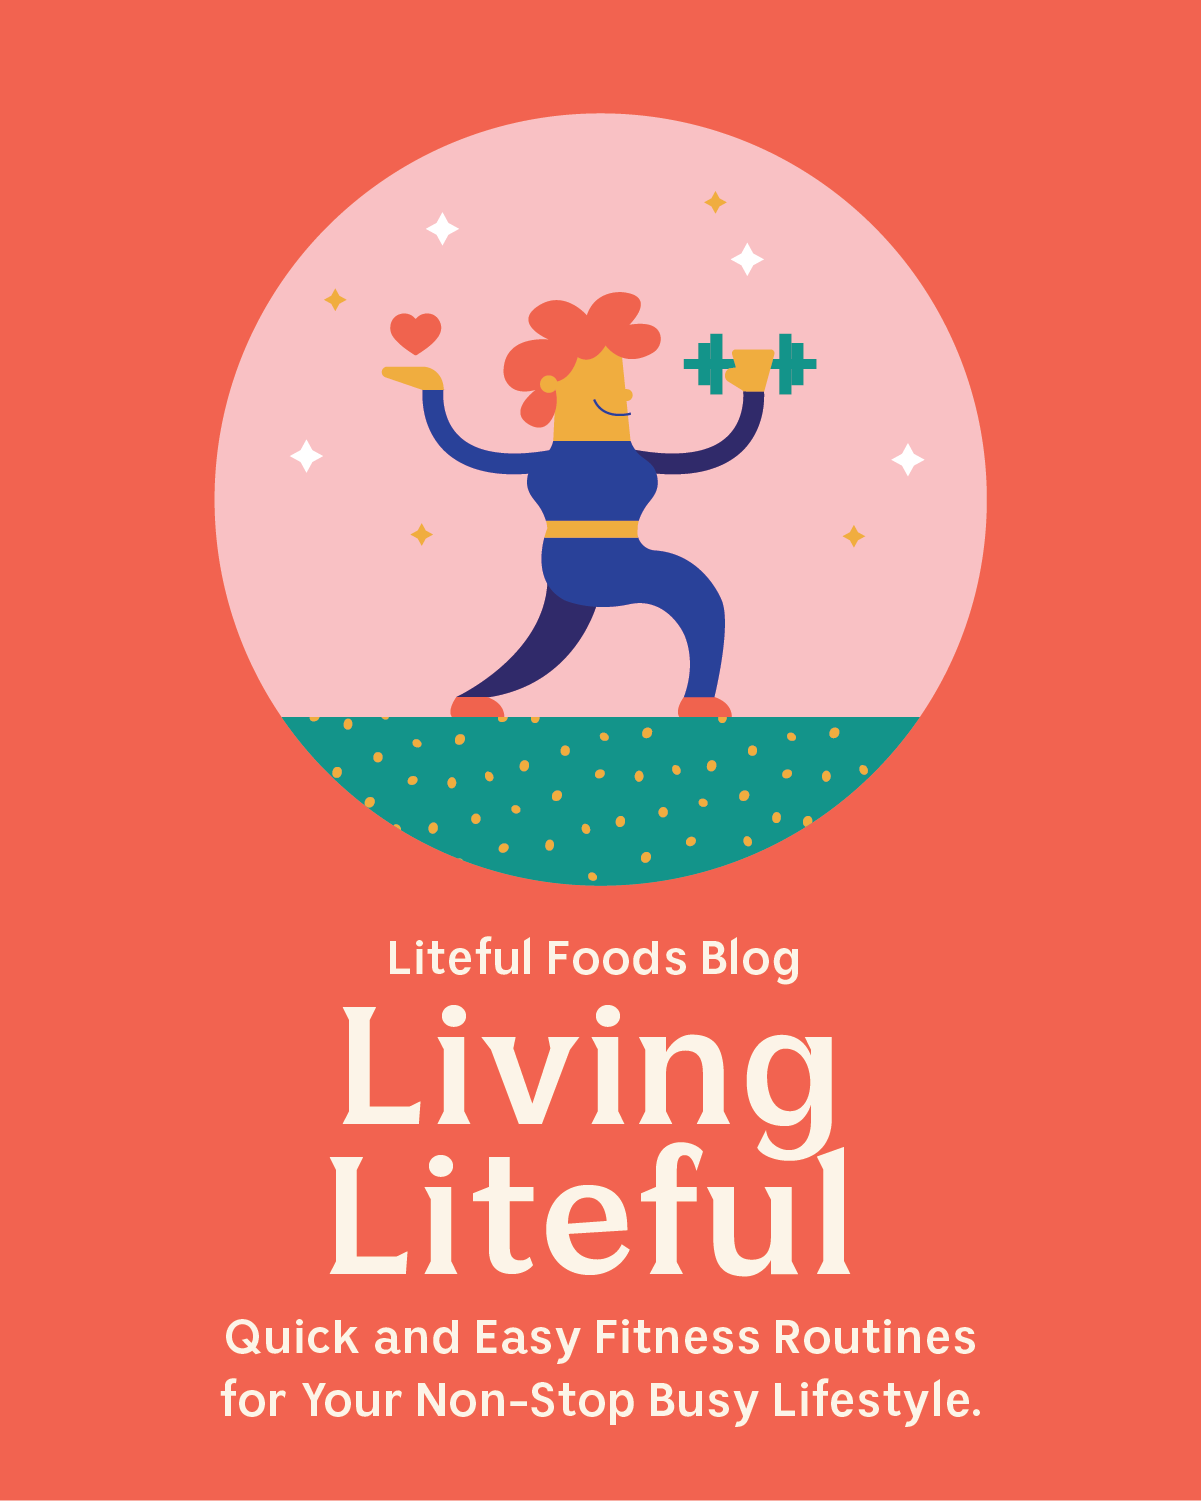 Quick and easy workout routines for your nonstop busy lifestyle. - - #LitefulFoods #Liteful #Liteful...